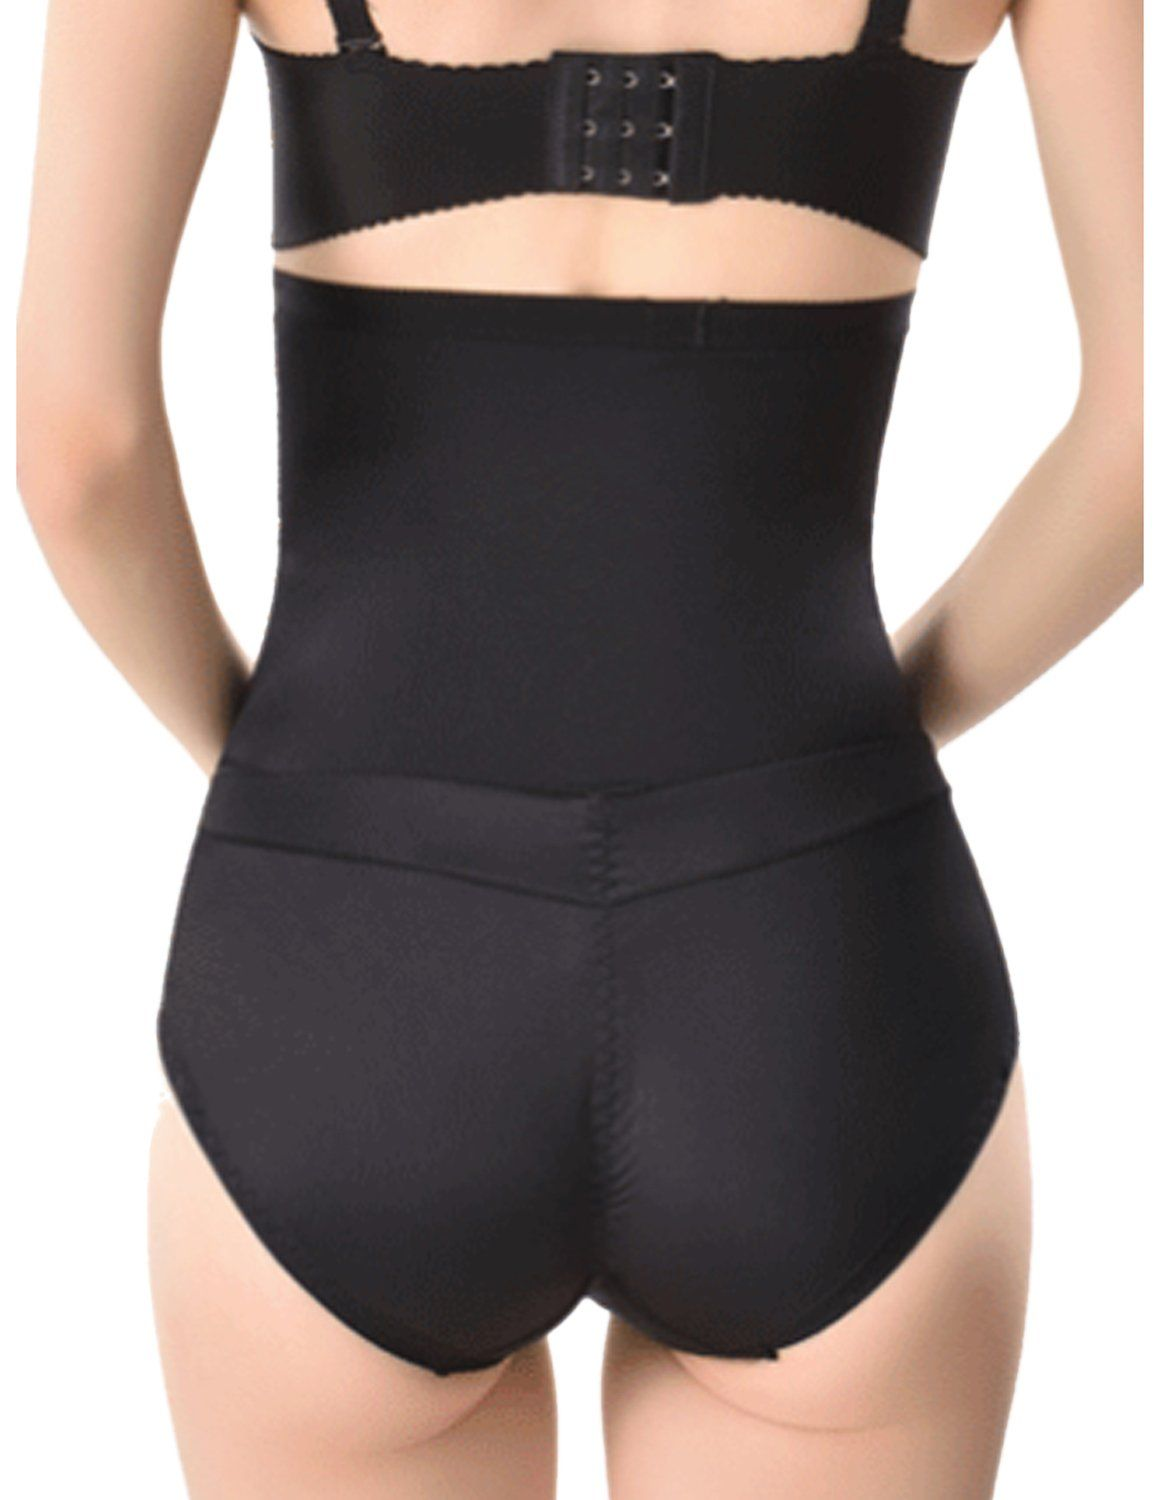 0d74e666d2d81 Burvogue Women Shapewear Brief Body Shaper Tummy Control Slimming Panties  XXLarge Black    Check out this great product. (Note Amazon affiliate link)